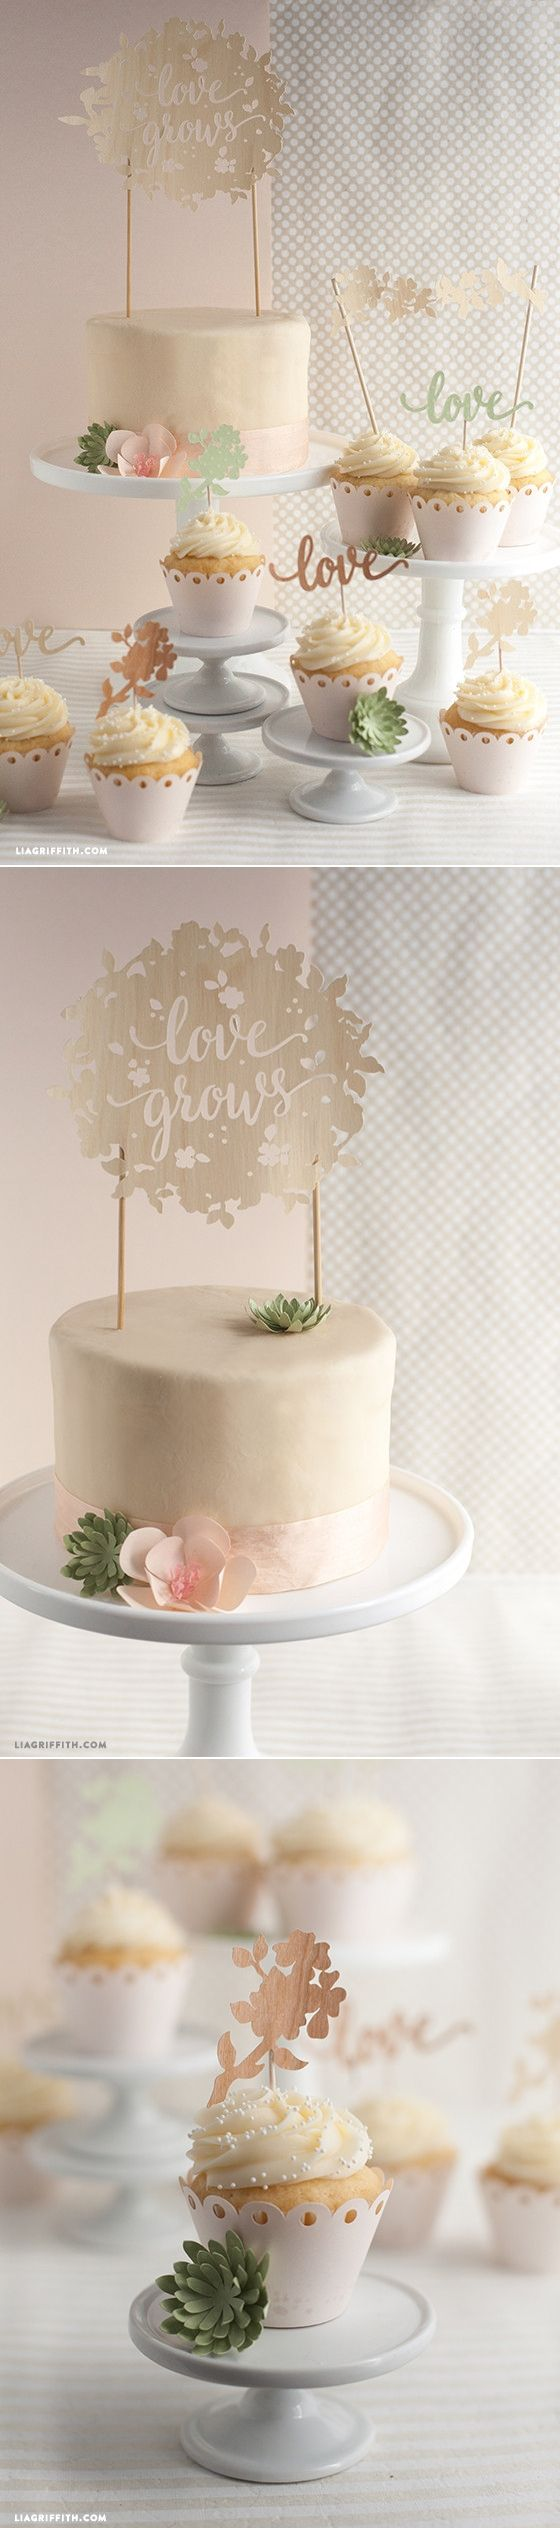 #DIYWedding Cake and Cupcake Topper pattern at www.LiaGriffith.com